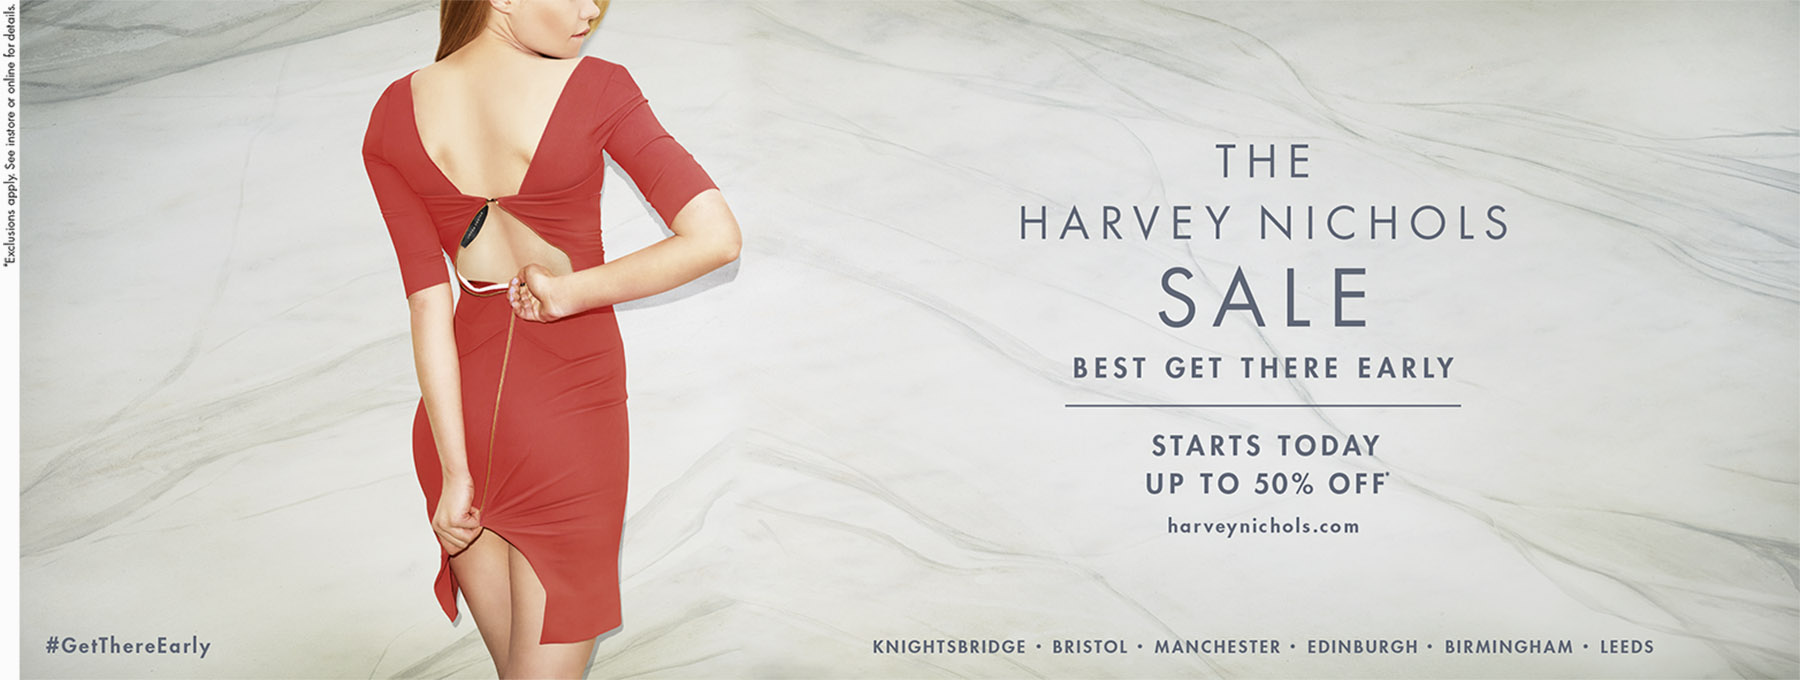 KH4037_HN_BEST_GET_THERE_EARLY_DRESS_100X265_GENERIC_MASTER